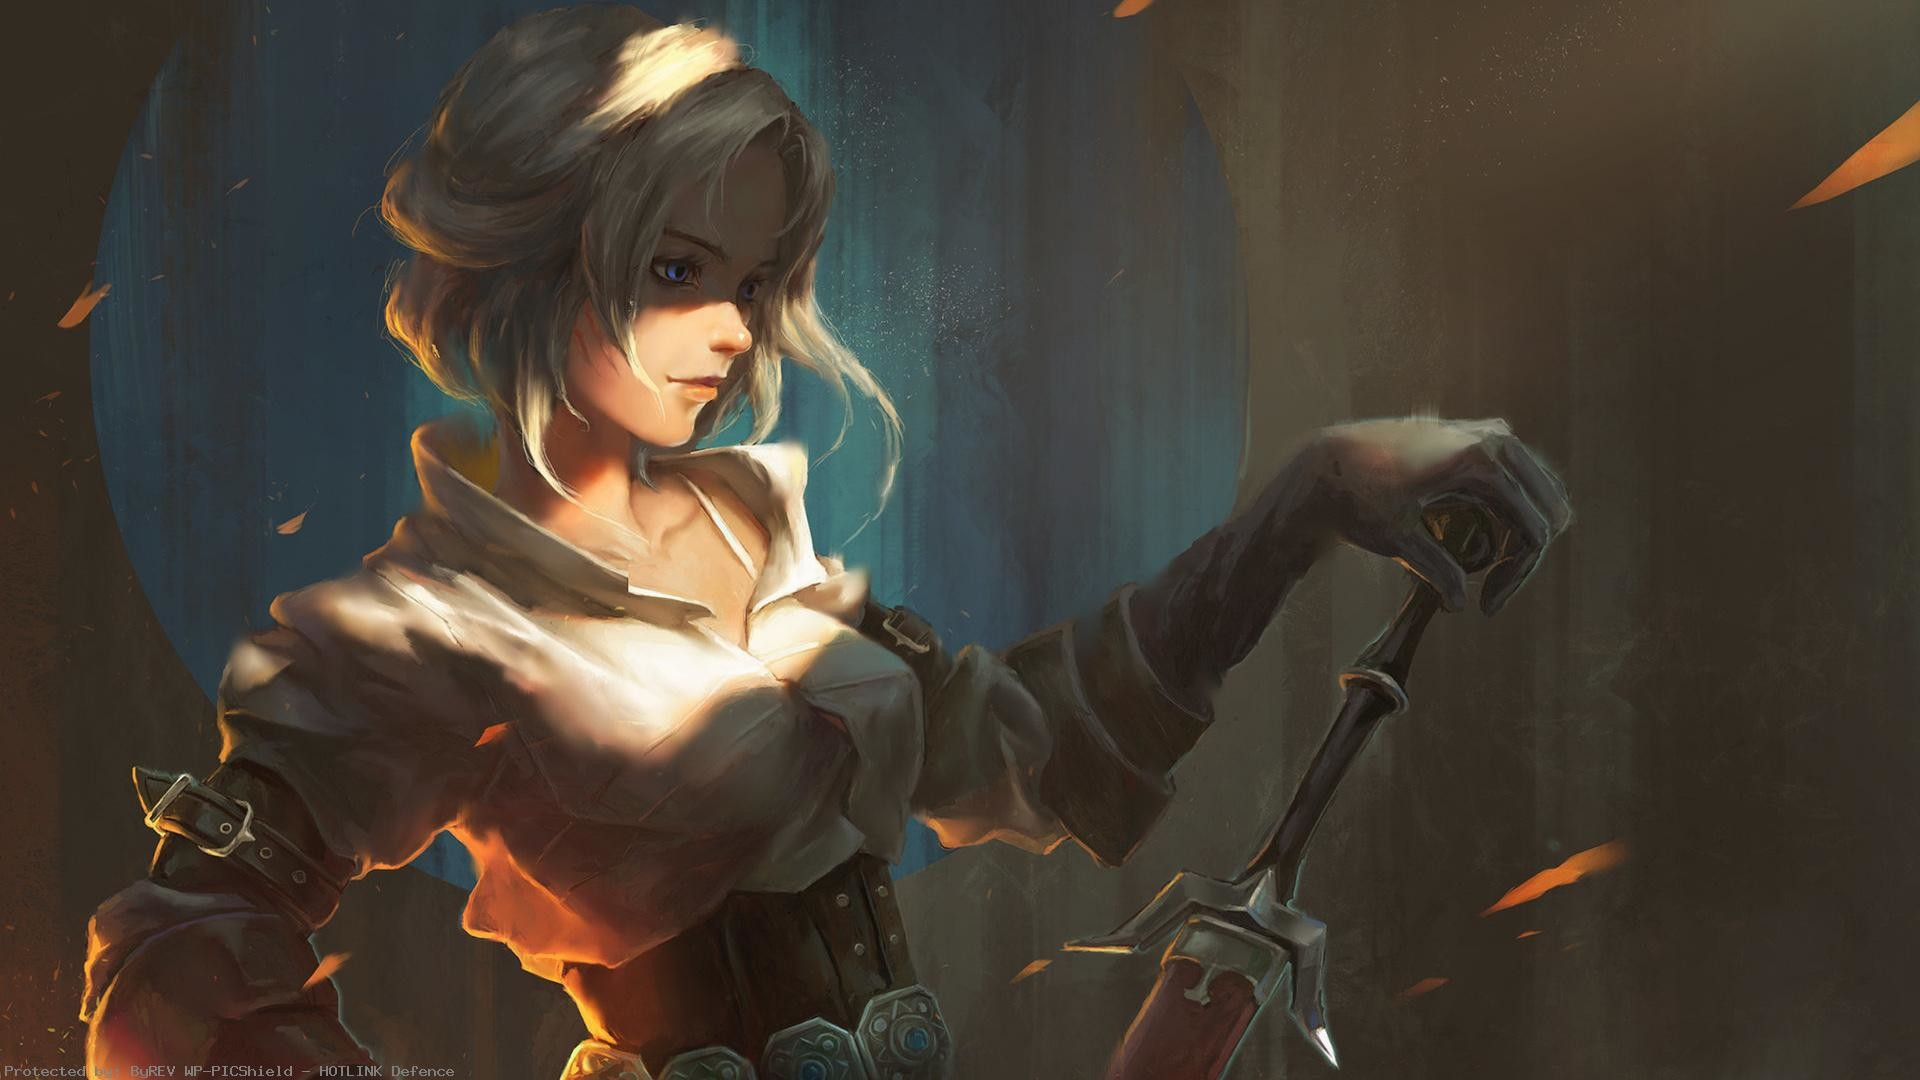 the-witcher-ciri-painted-sword-1920×1080-wallpaper-wp60013645